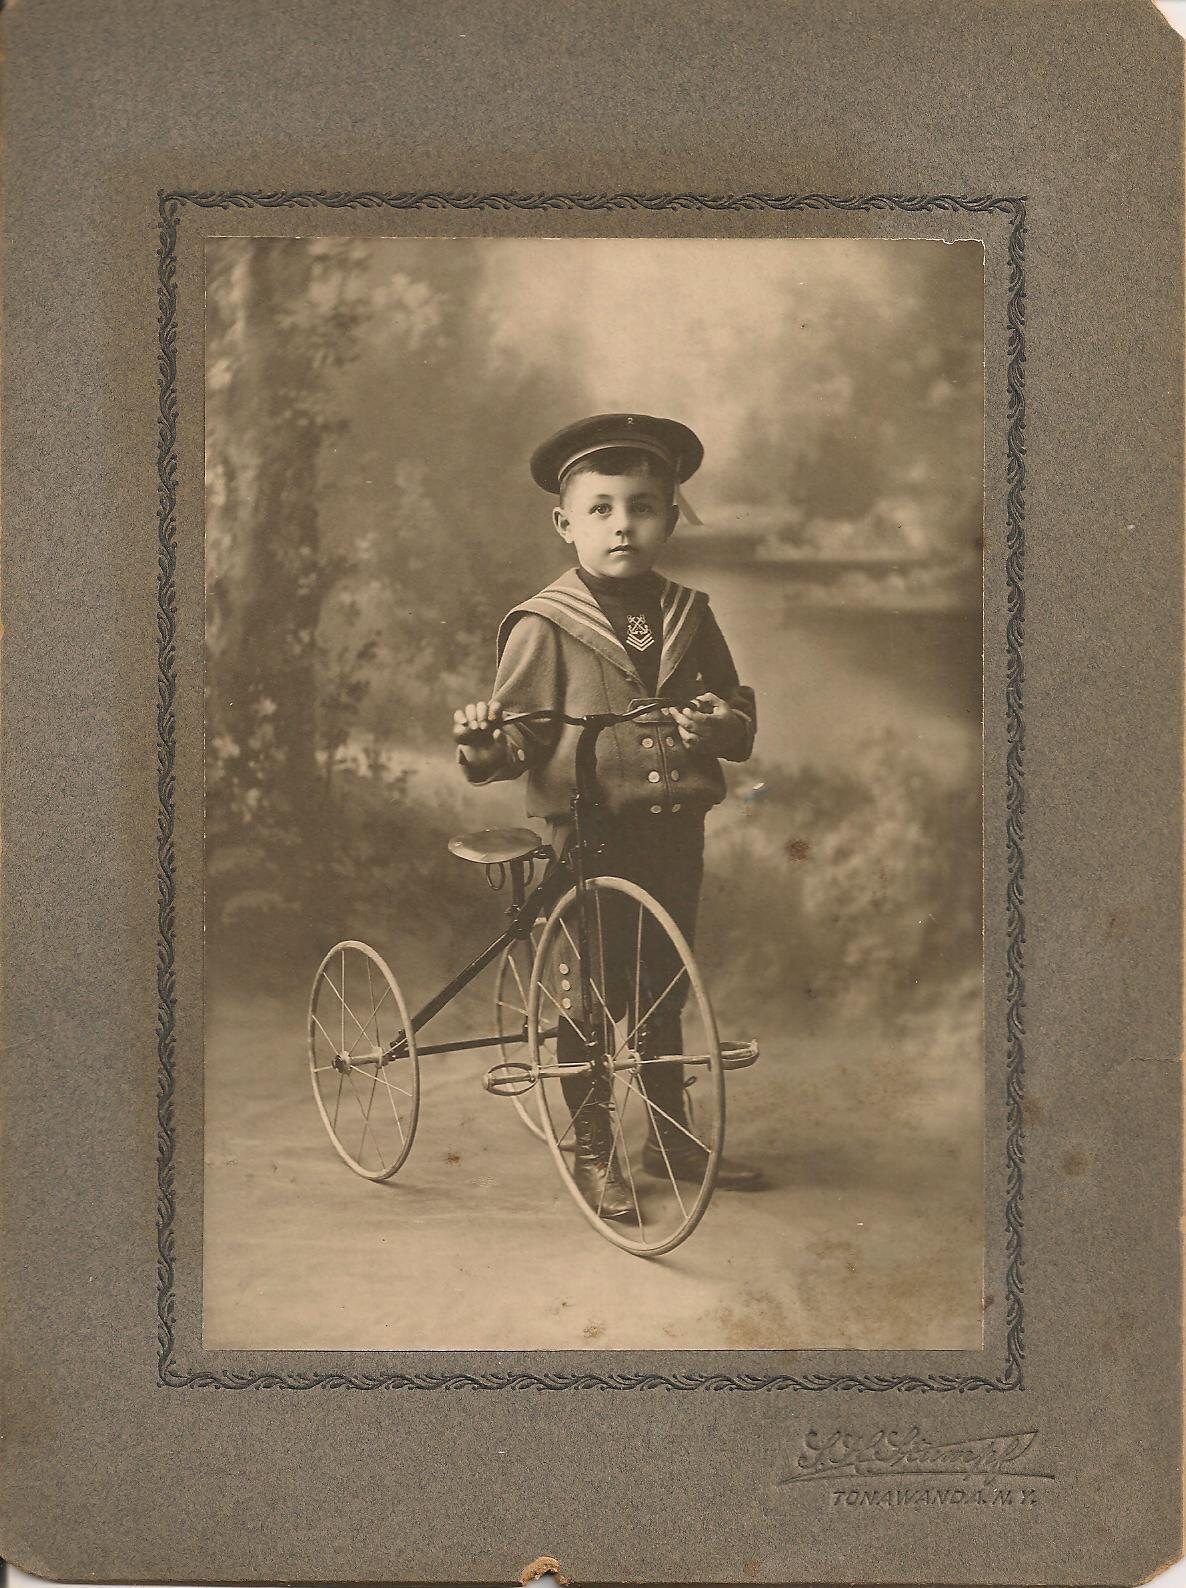 Boy with tricycle, Stumpf, cabinet card (c1900).jpg